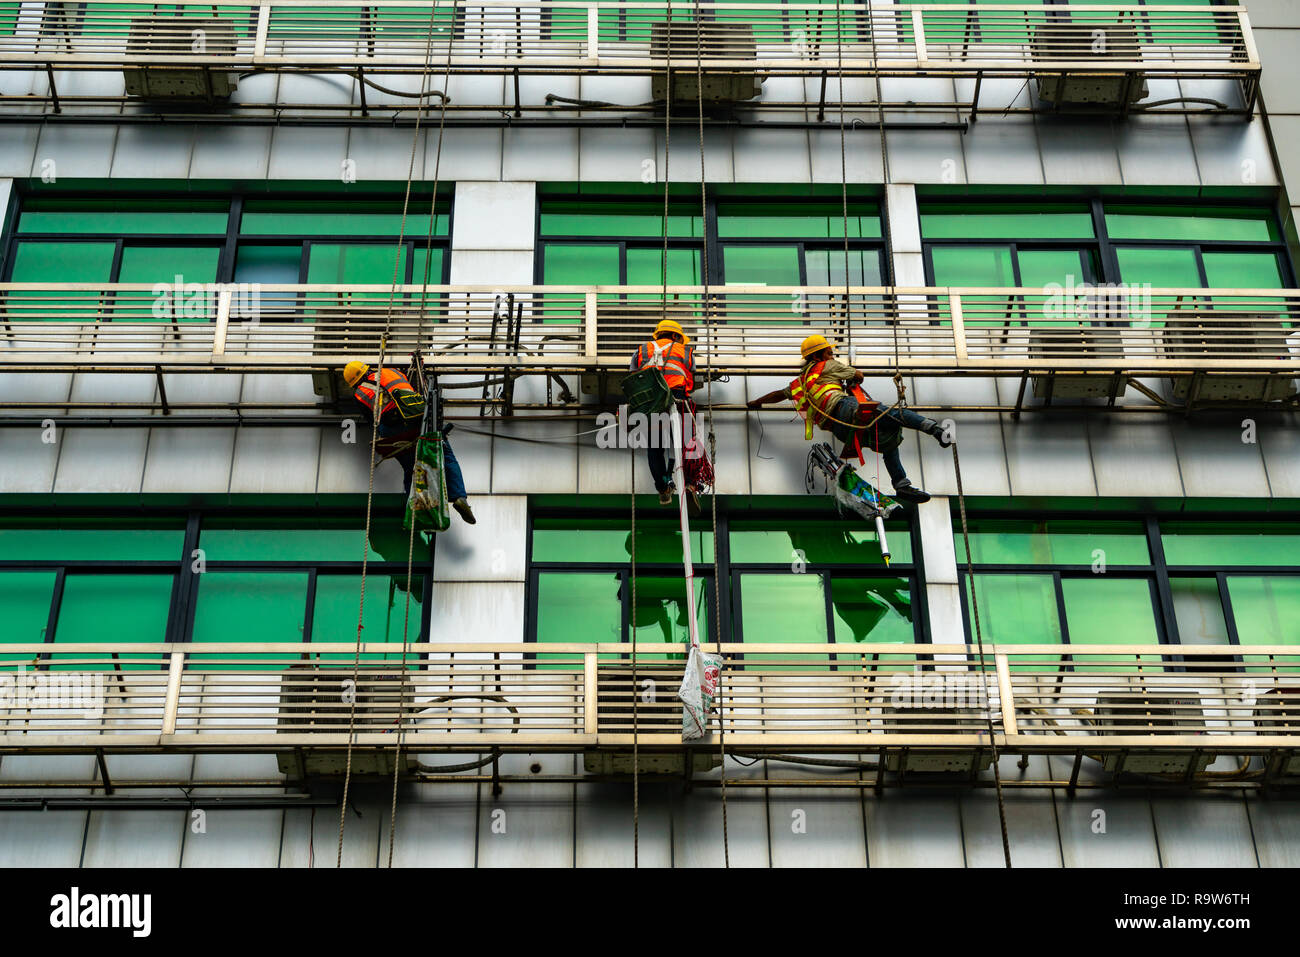 Occupation: repairmen suspended by ropes at building exterior in Shenzhen, China Stock Photo